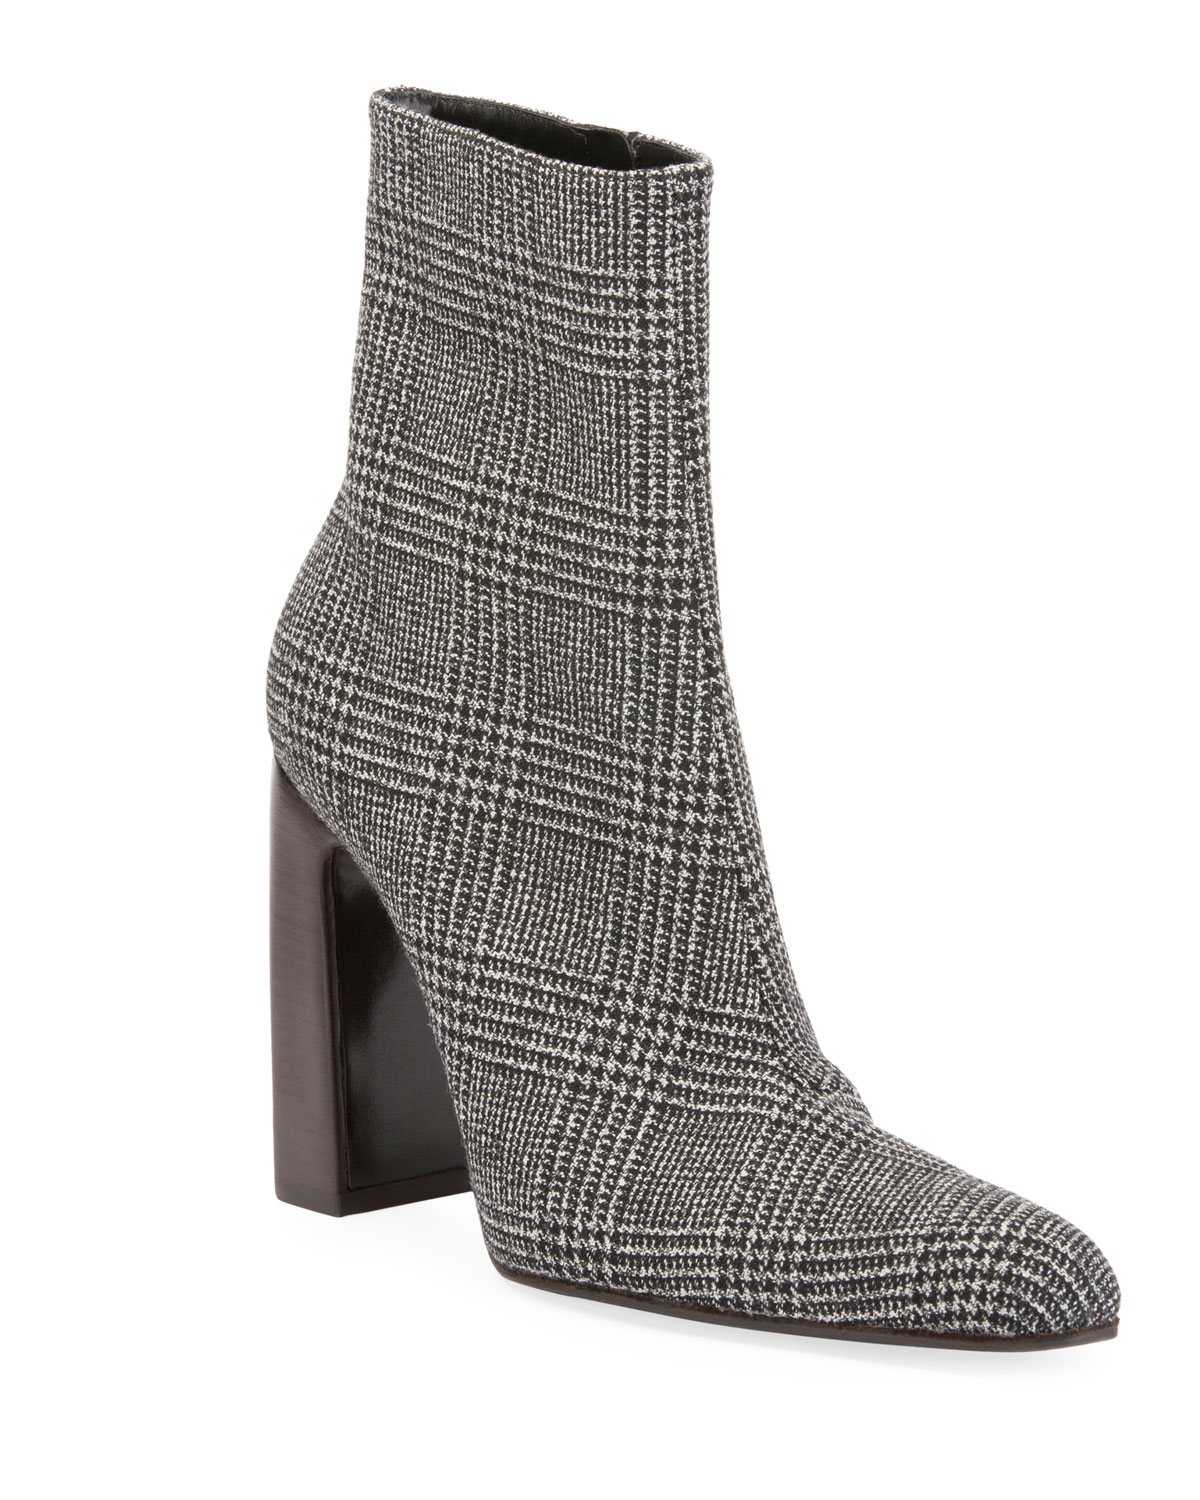 1a6f900b6f9 Balenciaga Prince of Wales Plaid Block-Heel Booties